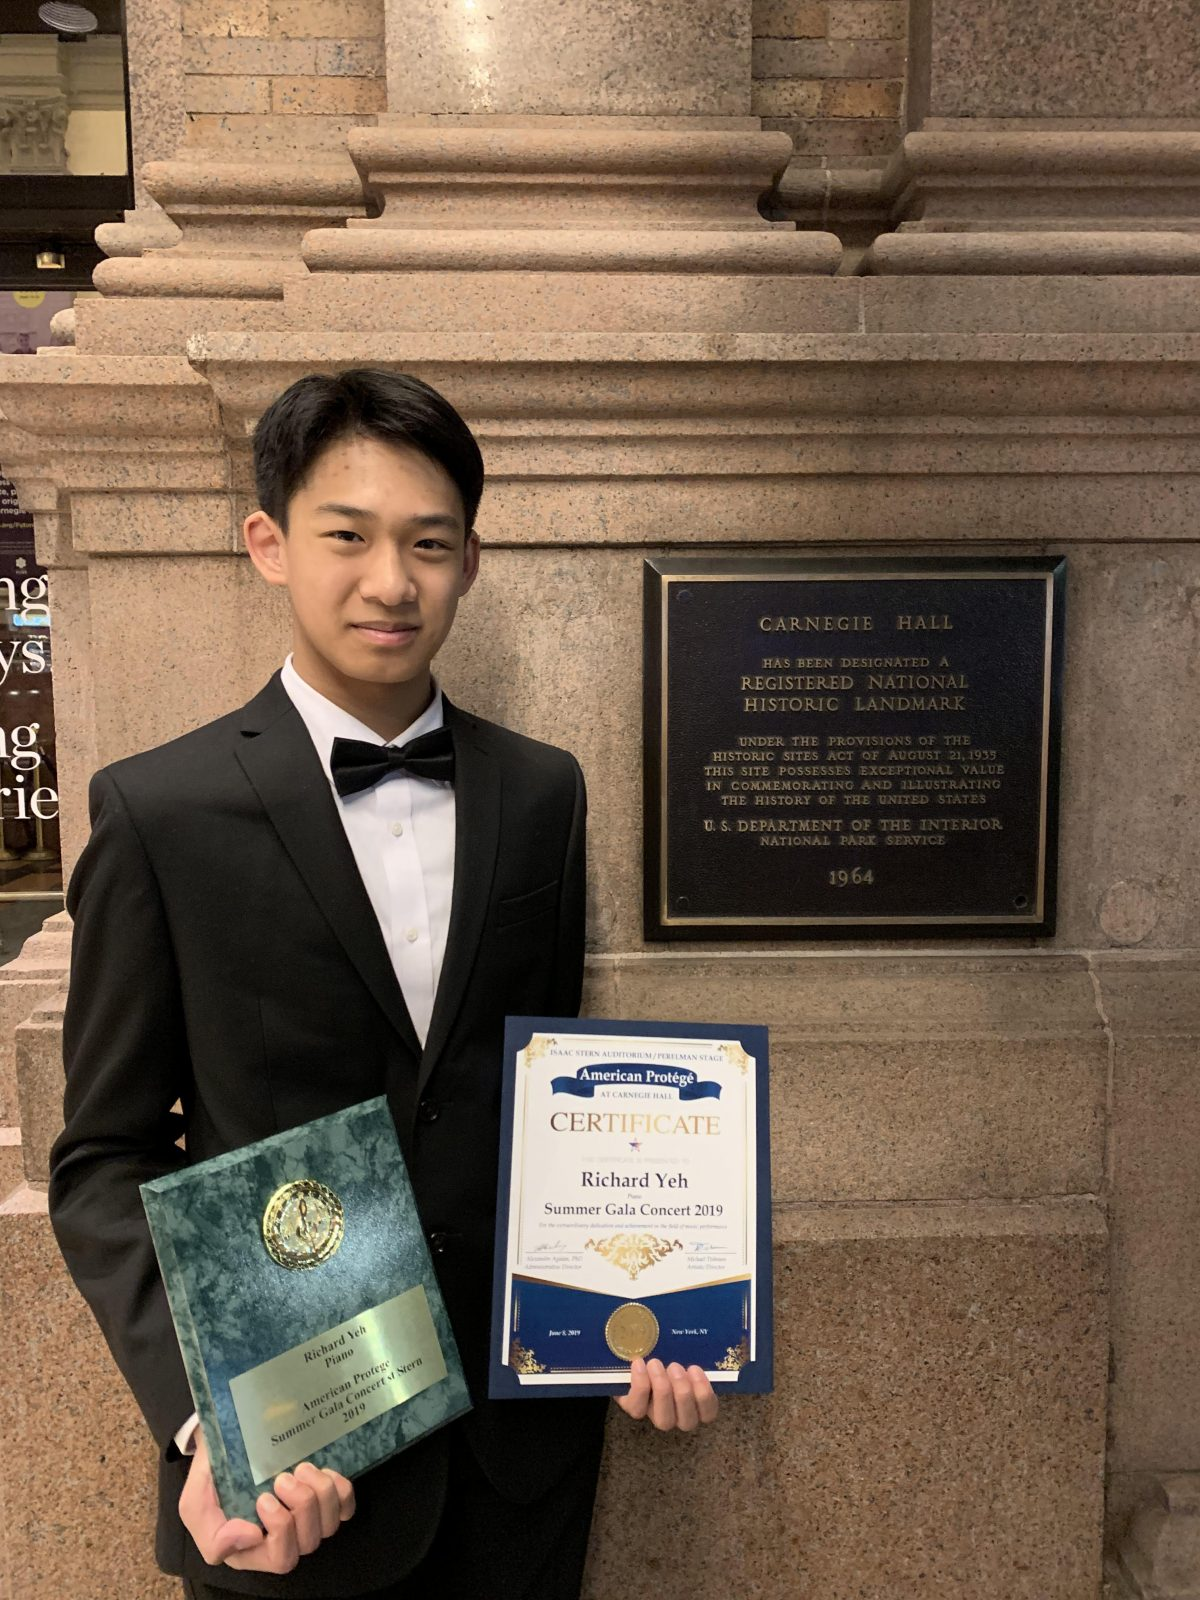 St. Brother Andre student plays Carnegie Hall